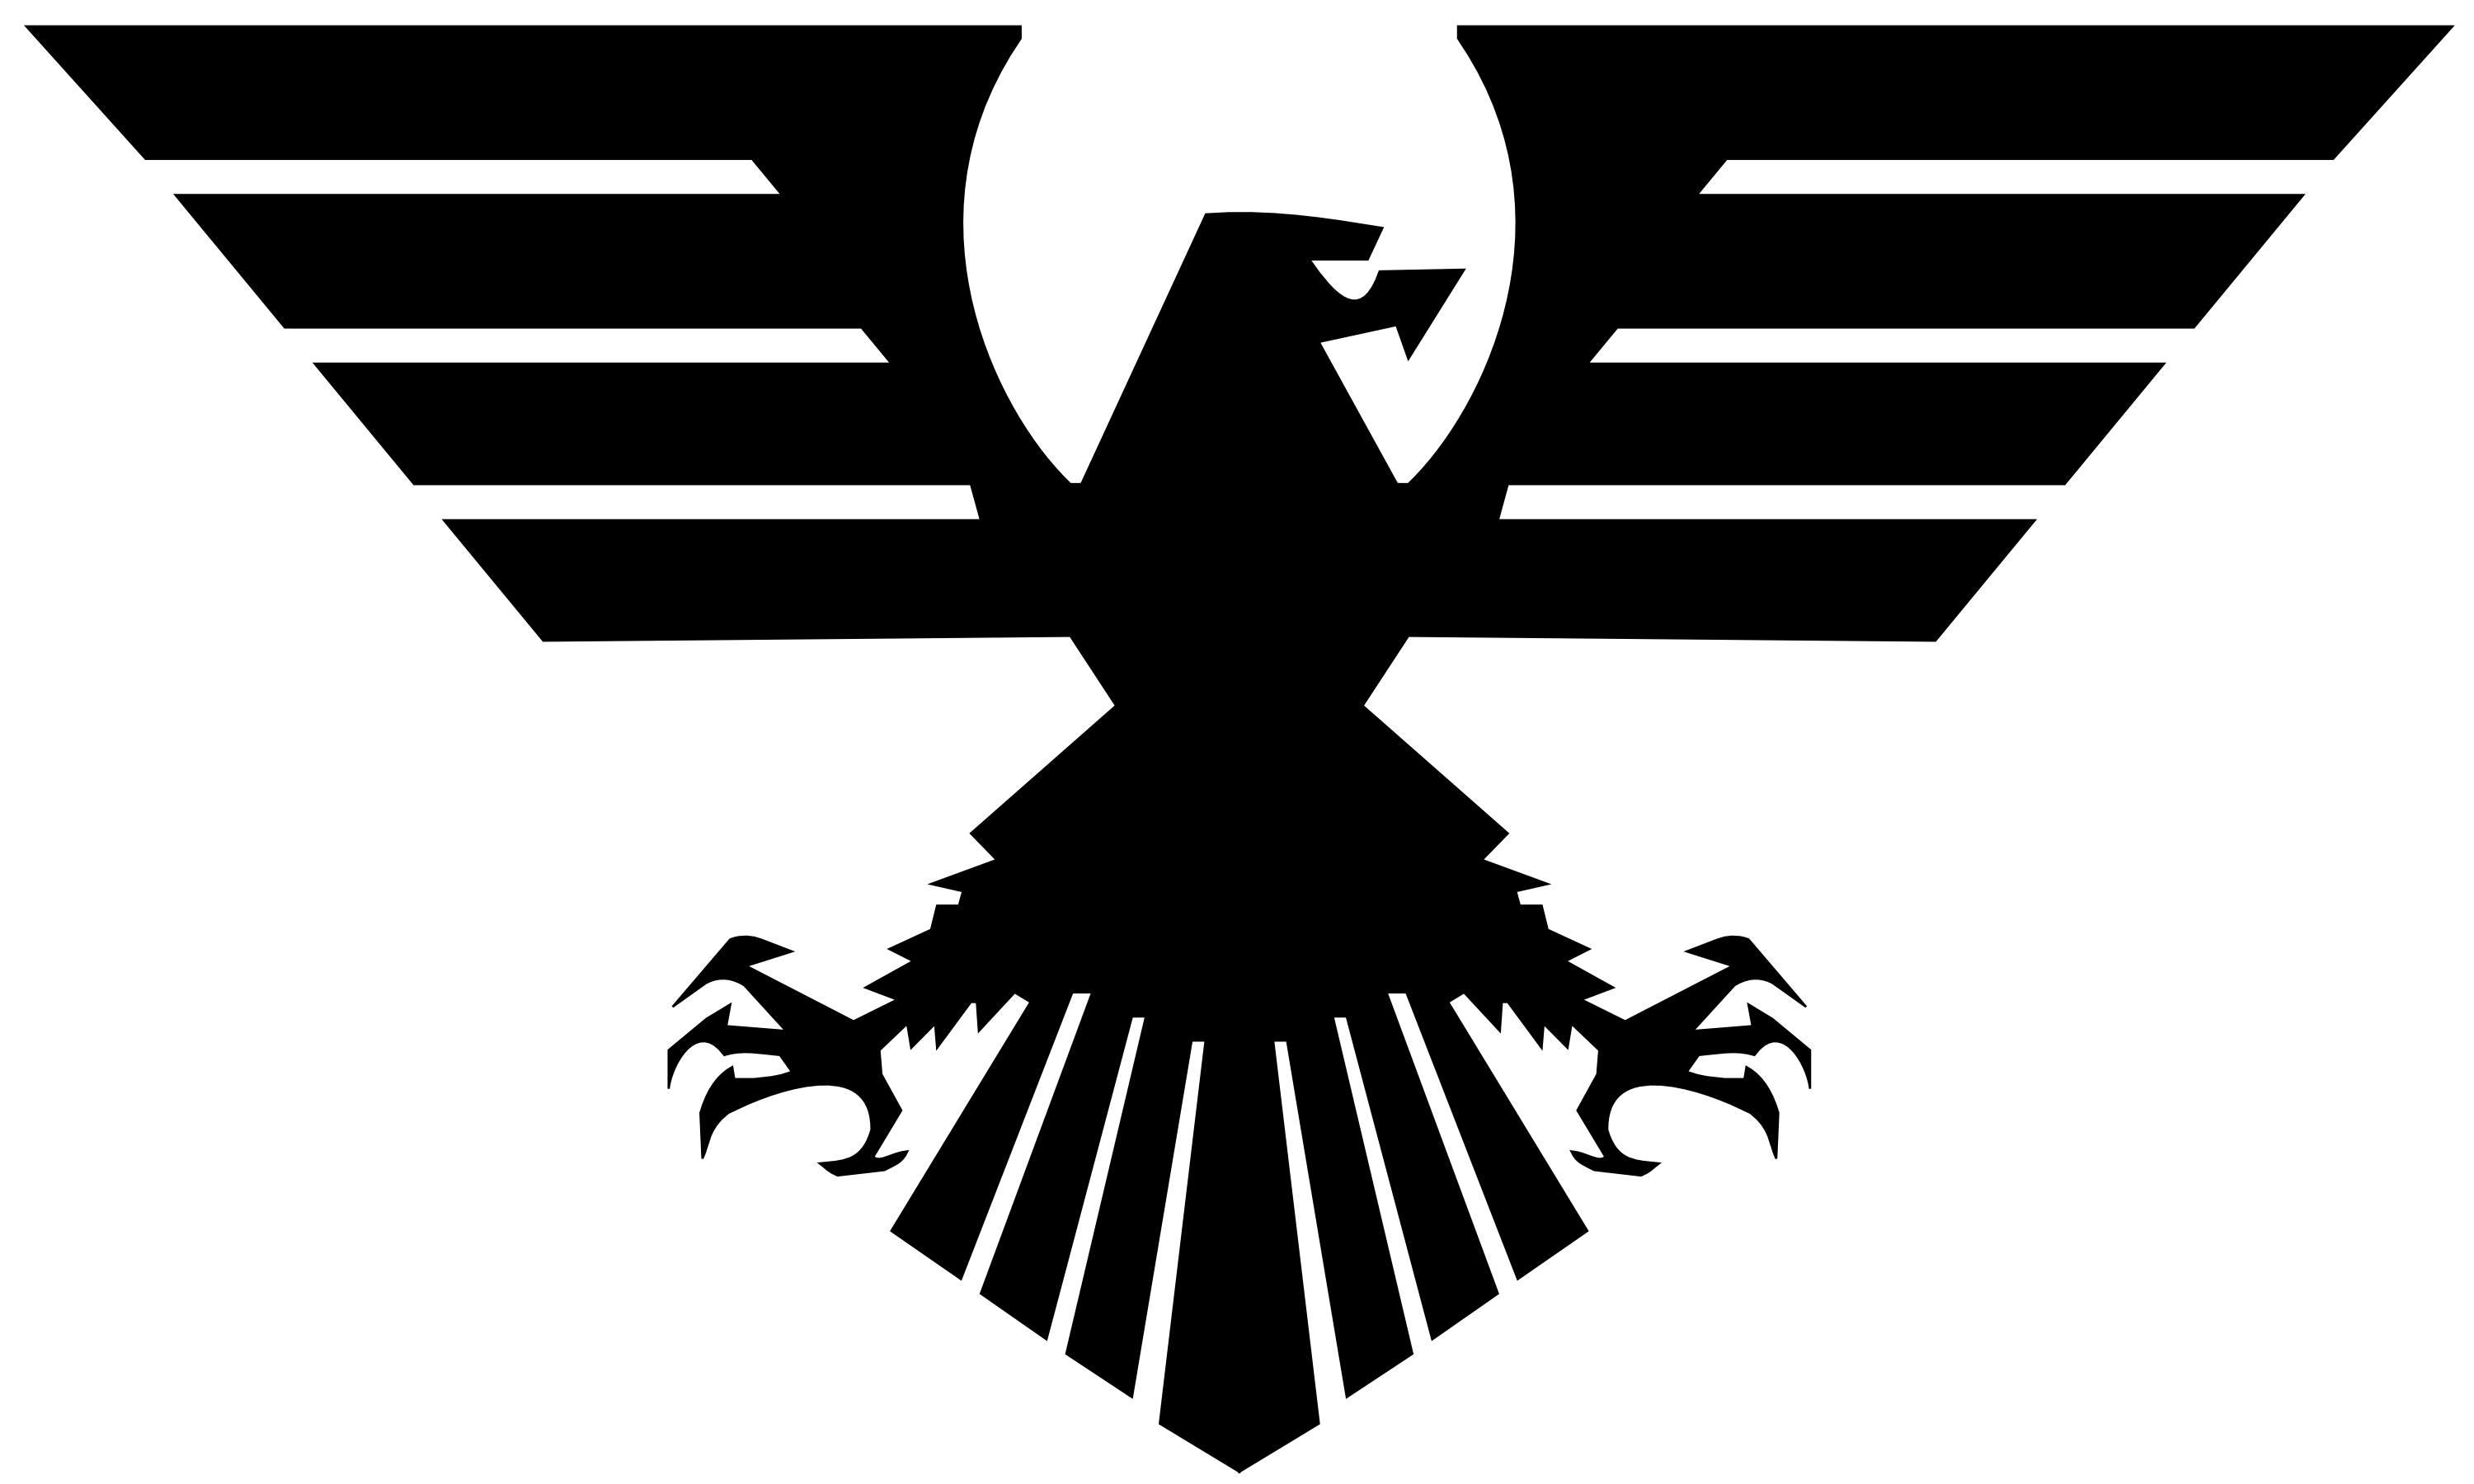 Fighting clipart war victory. Eagle png image free